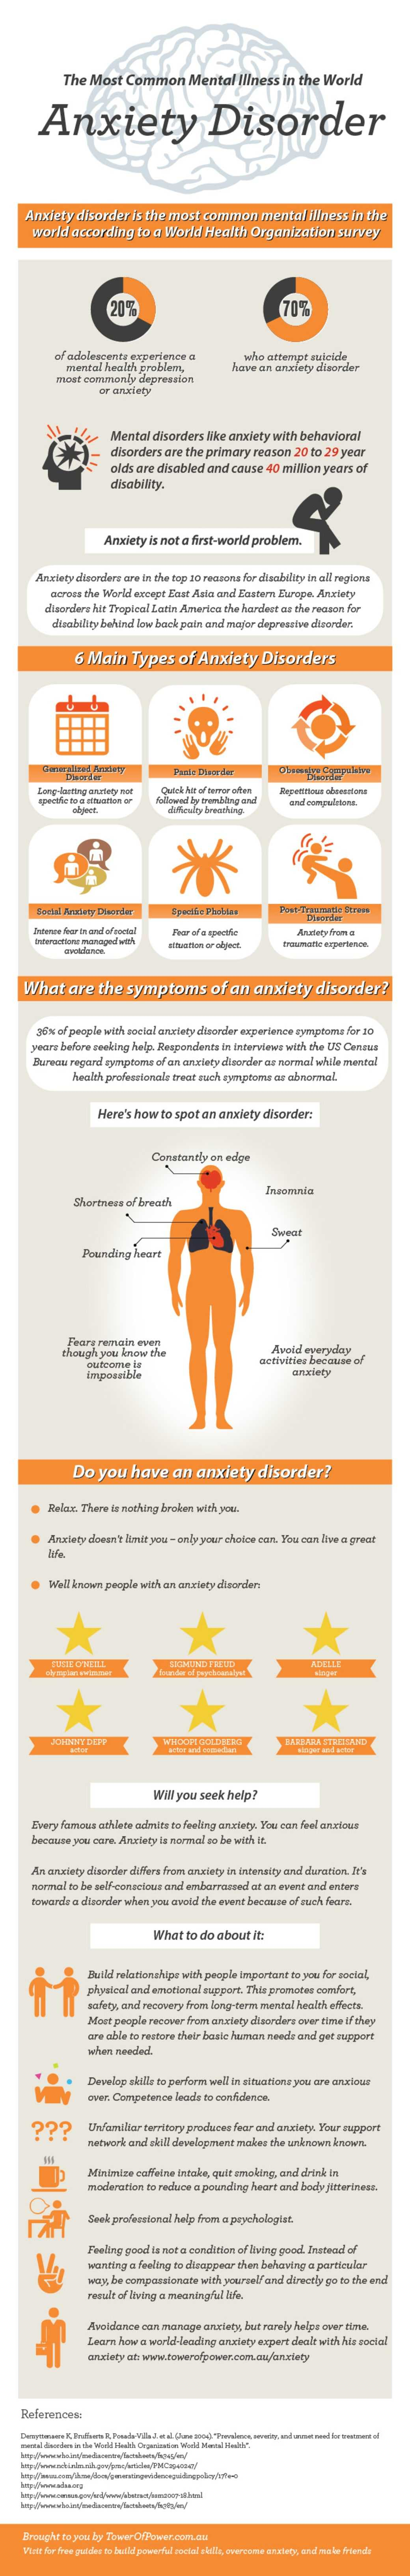 What You Should Know About Anxiety Disorders